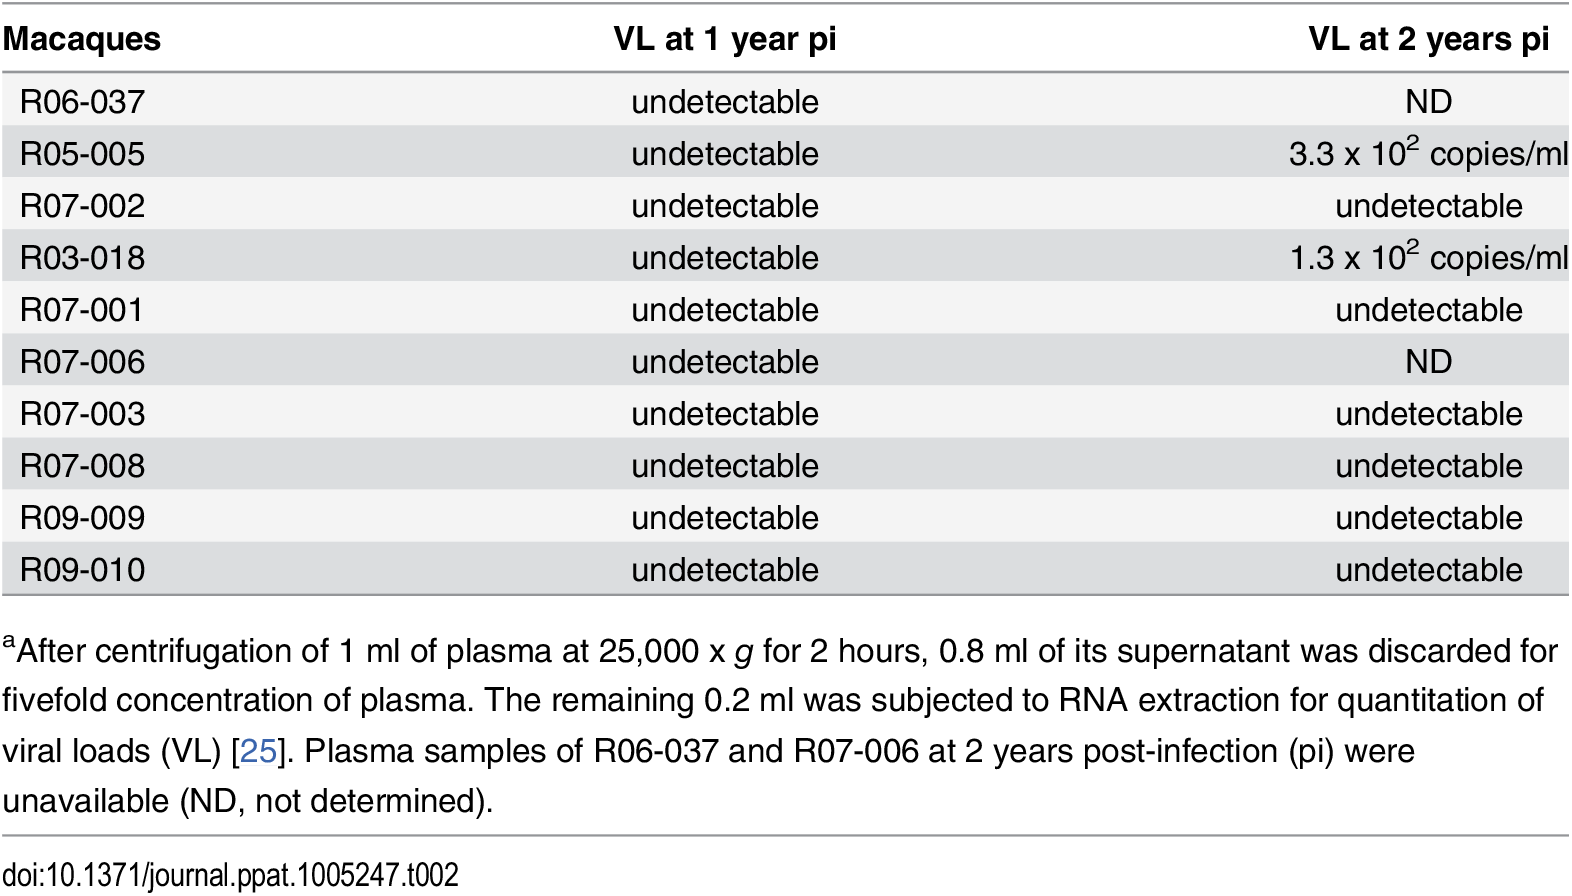 Plasma viral loads determined by using fivefold-concentrated plasma<em class=&quot;ref&quot;><sup>a</sup></em>